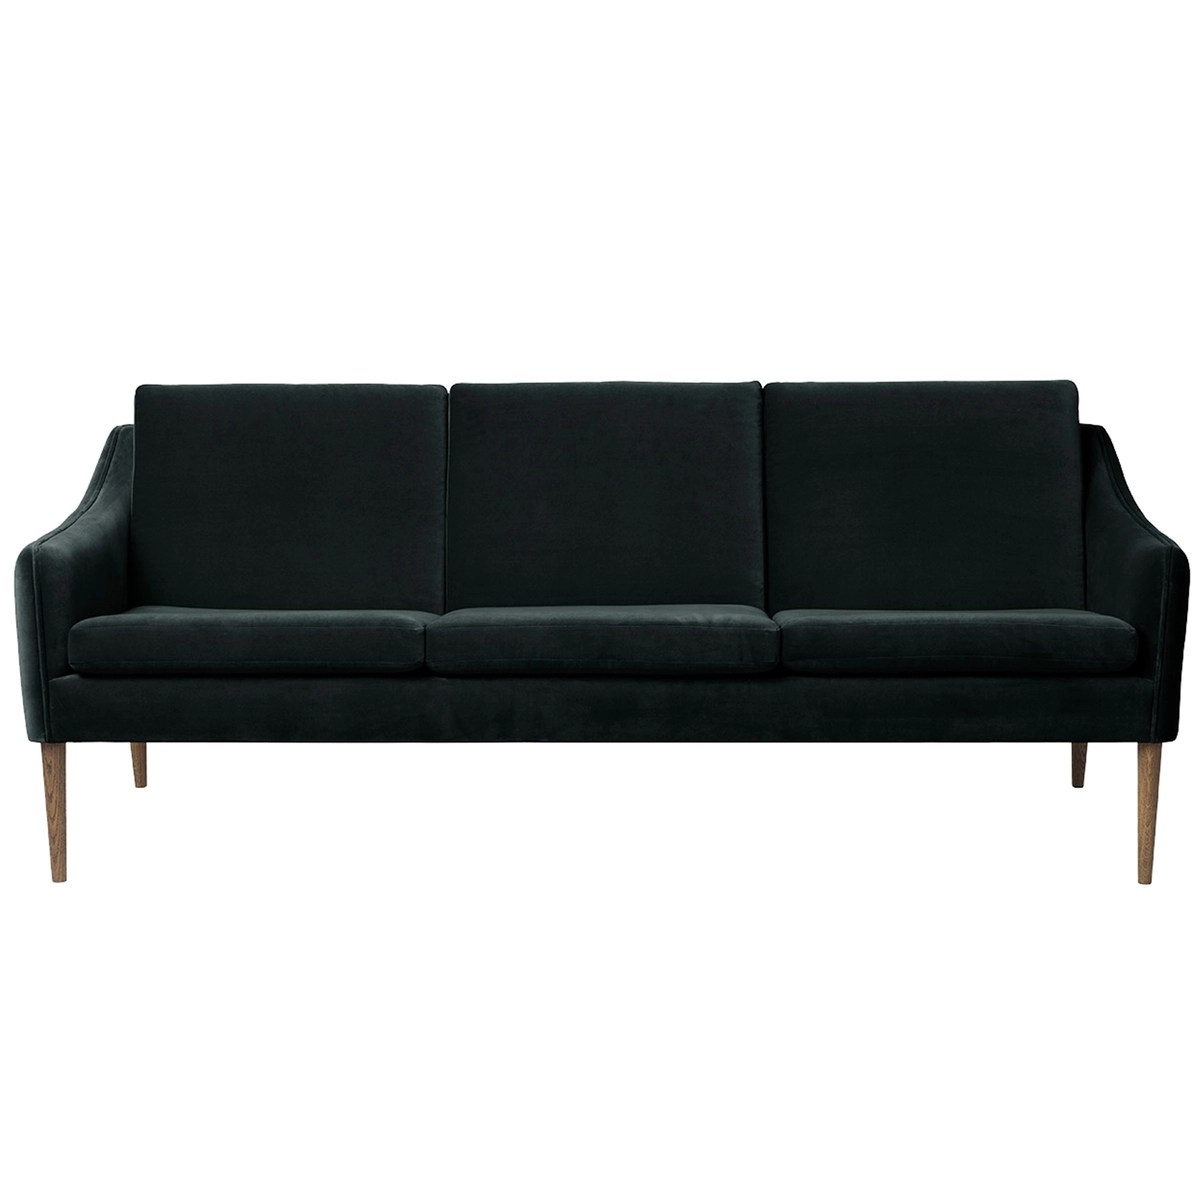 Couch Petrol Mr Olsen Sofa 3 Seater Smoked Oak Dark Petrol